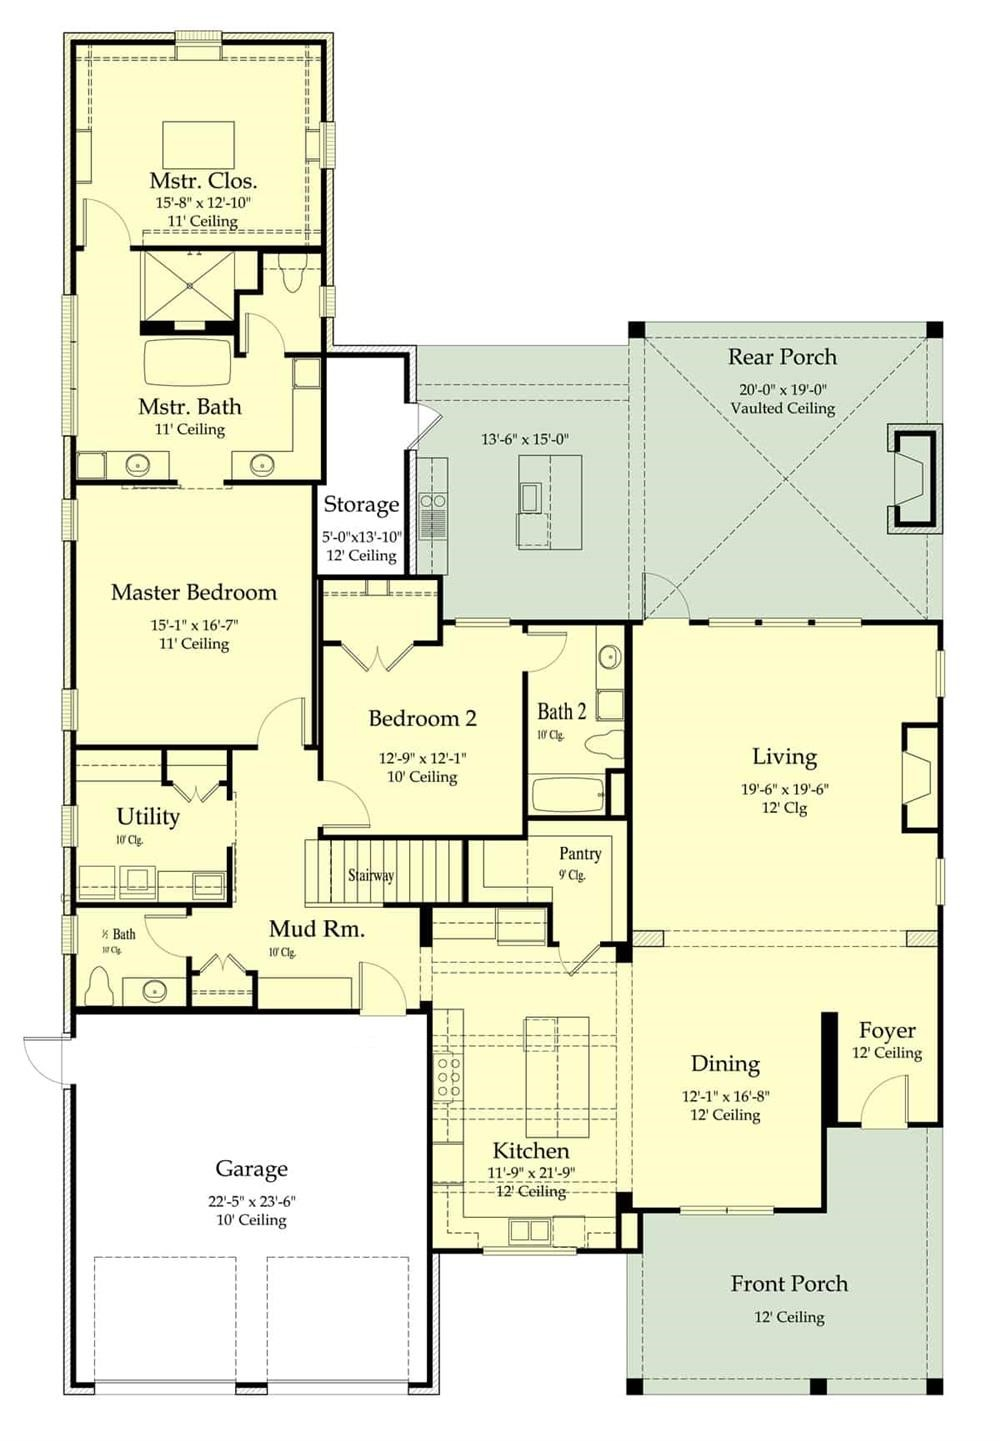 Floor plan layout of Cottage style plan #204-1019 showing tall ceiling heights